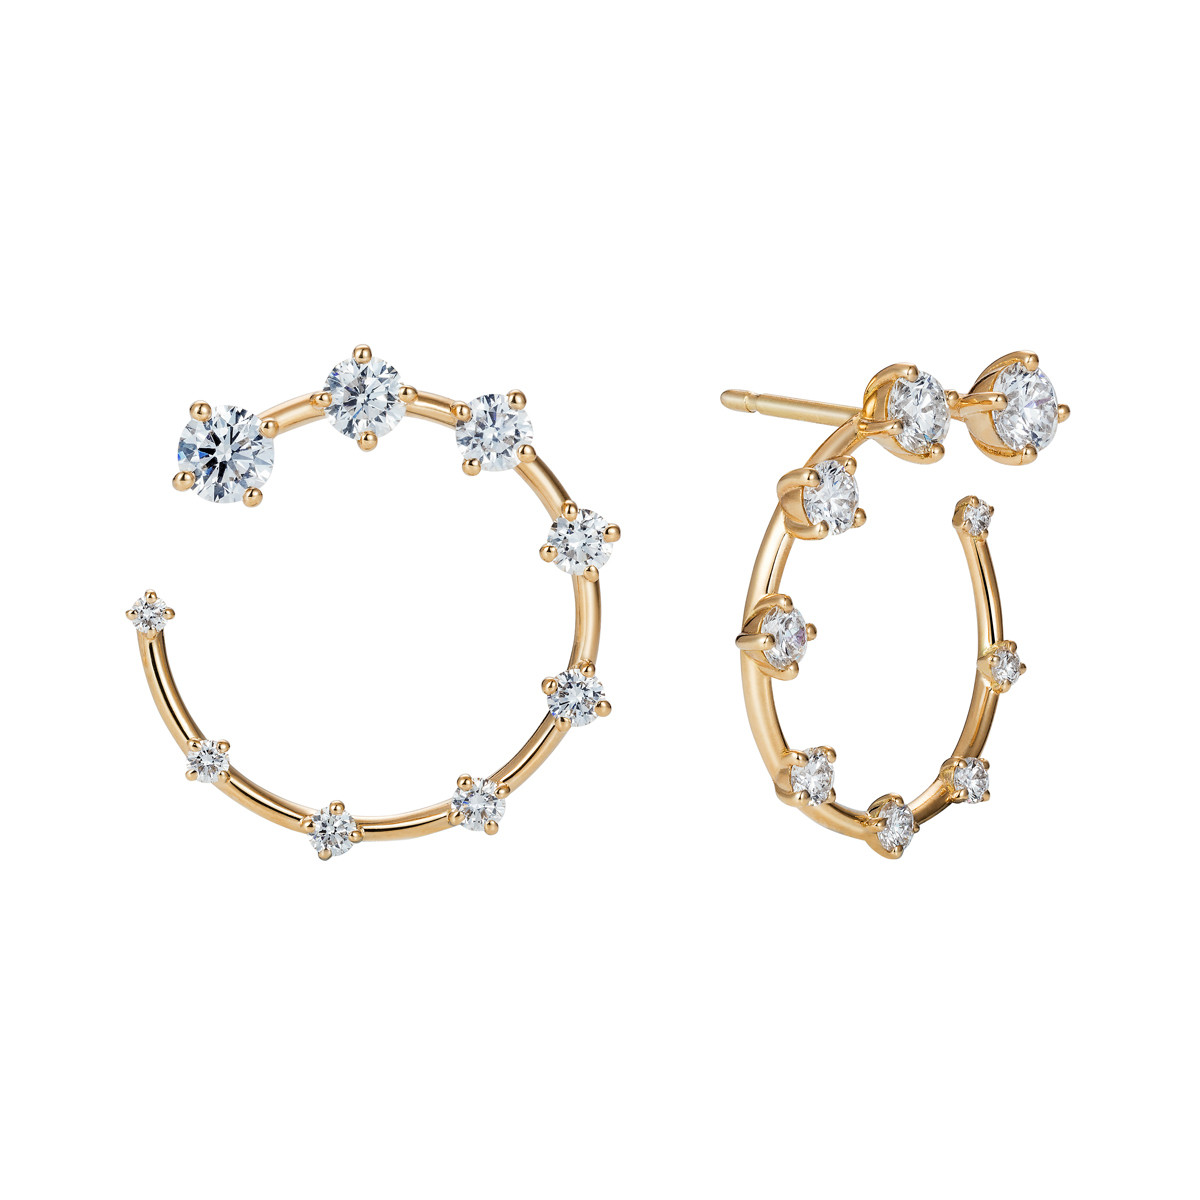 Small 18k Yellow Gold & Diamond Circle Earrings